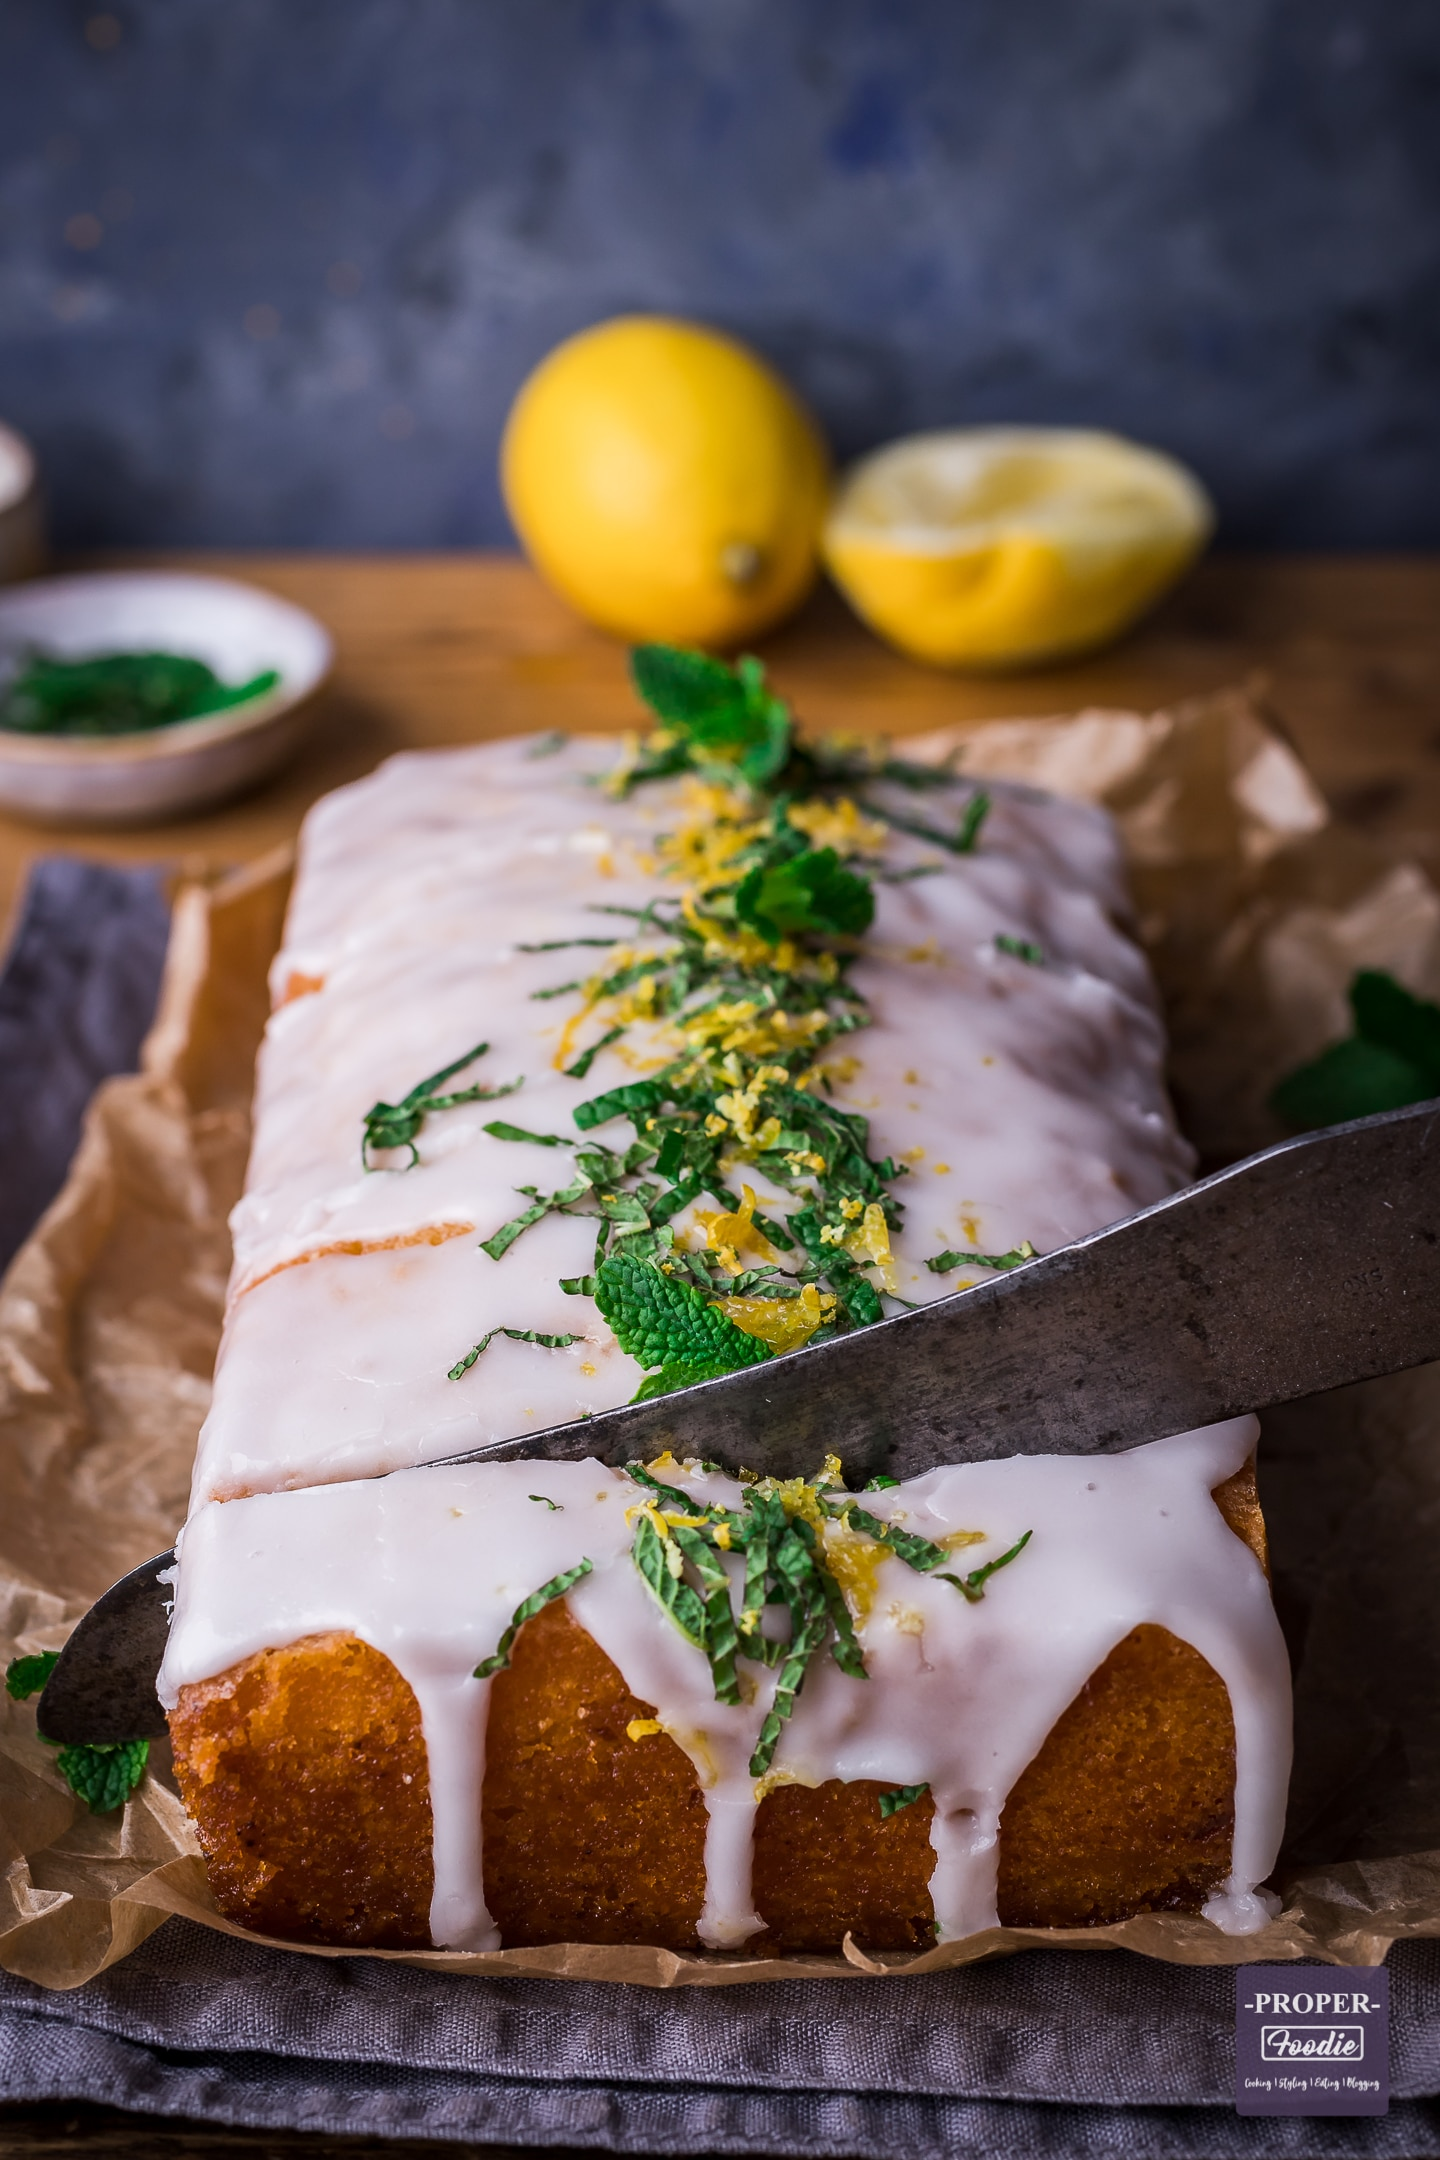 Lemon drizzle cake with lemon icing